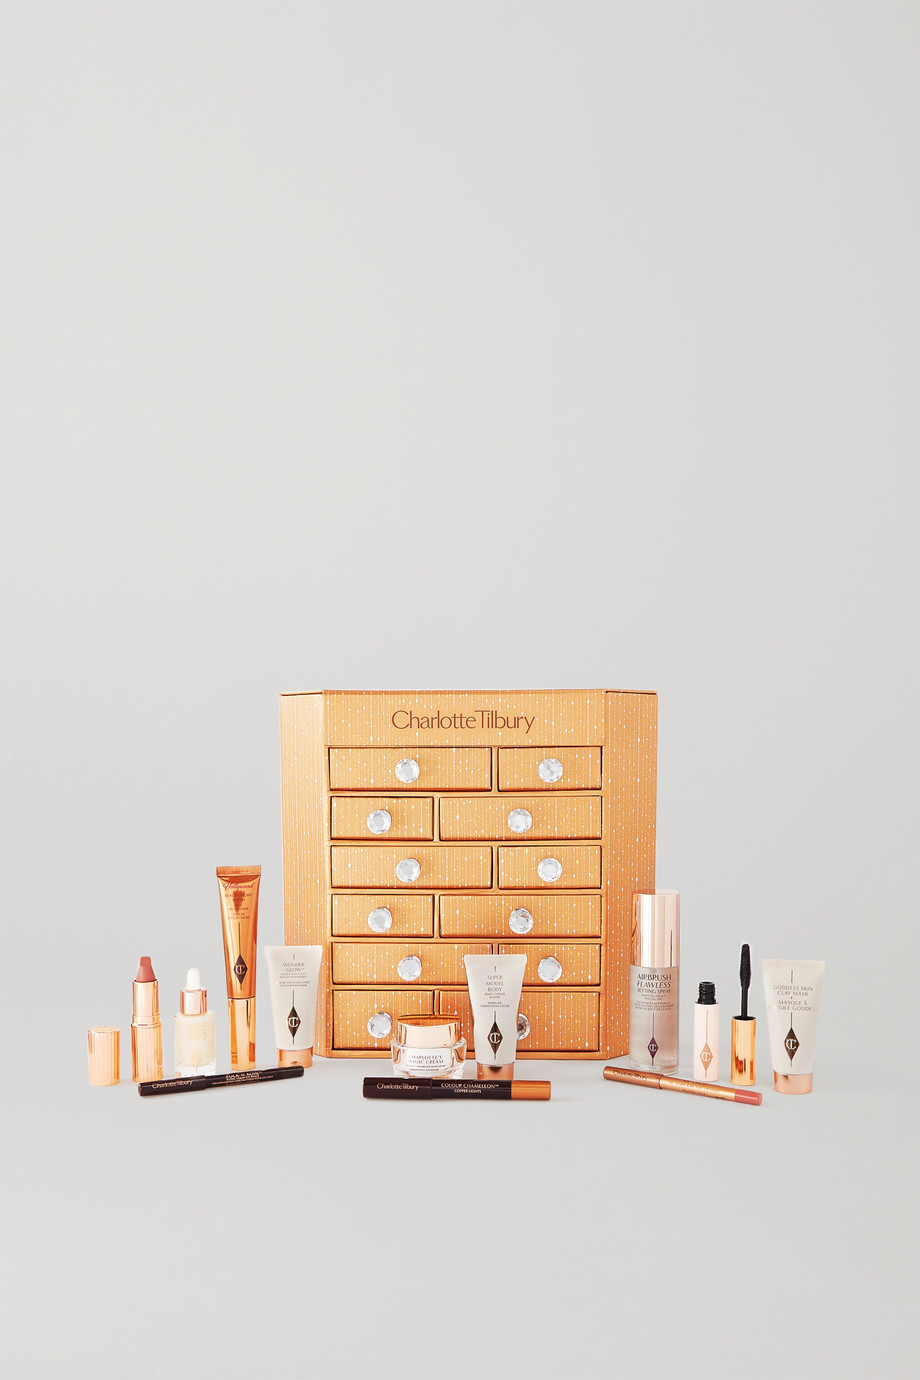 Charlotte Tilbury Coffret Bejewelled Chest of Treasures